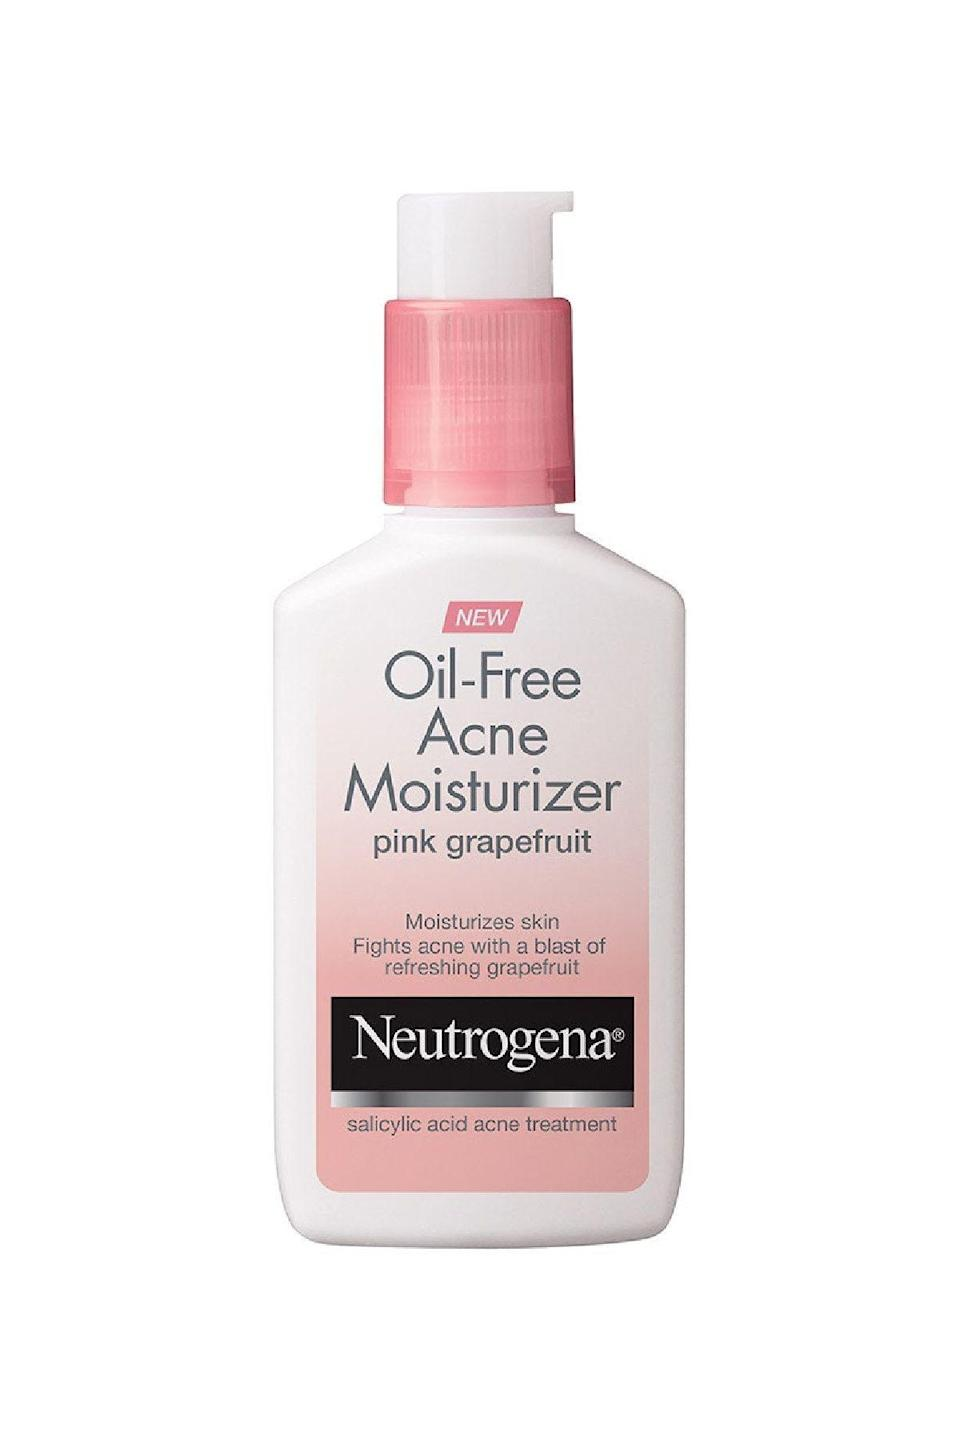 """<p><strong>Neutrogena</strong></p><p>amazon.com</p><p><strong>$6.67</strong></p><p><a href=""""https://www.amazon.com/dp/B00NR1YQKO?tag=syn-yahoo-20&ascsubtag=%5Bartid%7C10058.g.34399769%5Bsrc%7Cyahoo-us"""" rel=""""nofollow noopener"""" target=""""_blank"""" data-ylk=""""slk:SHOP IT"""" class=""""link rapid-noclick-resp"""">SHOP IT</a></p><p>Teens and twenty-somethings alike will appreciate the .5 percent salicylic acid—which can quell breakouts—and the lotion's lightweight and readily absorbed finish. Also the pink grapefruit scent is undeniable. </p>"""